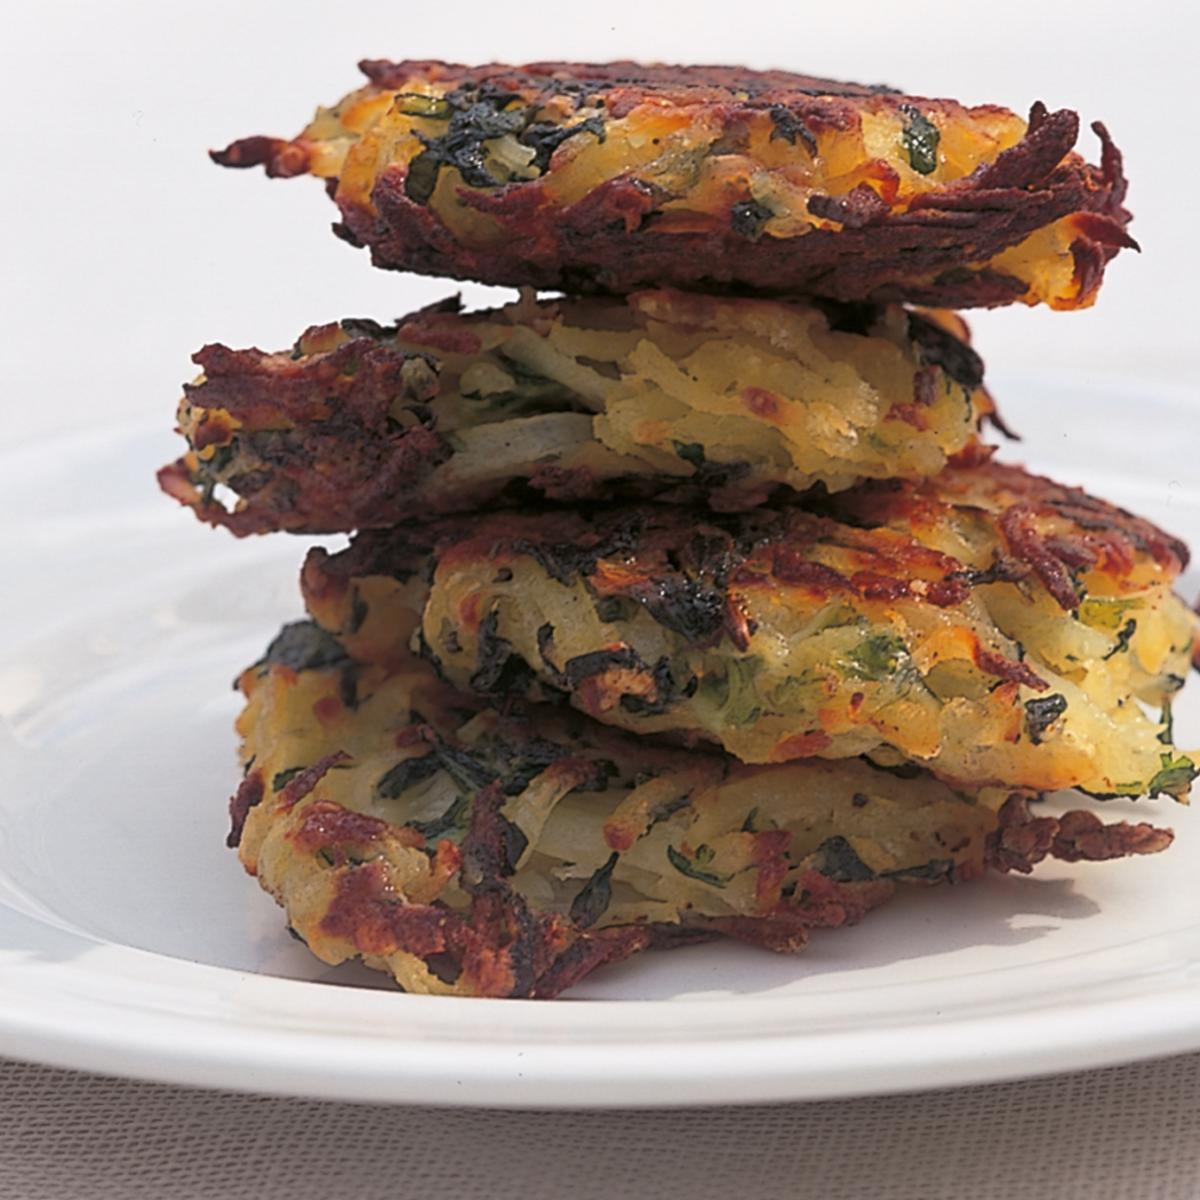 A picture of Delia's Bubble and Squeak Rösti recipe